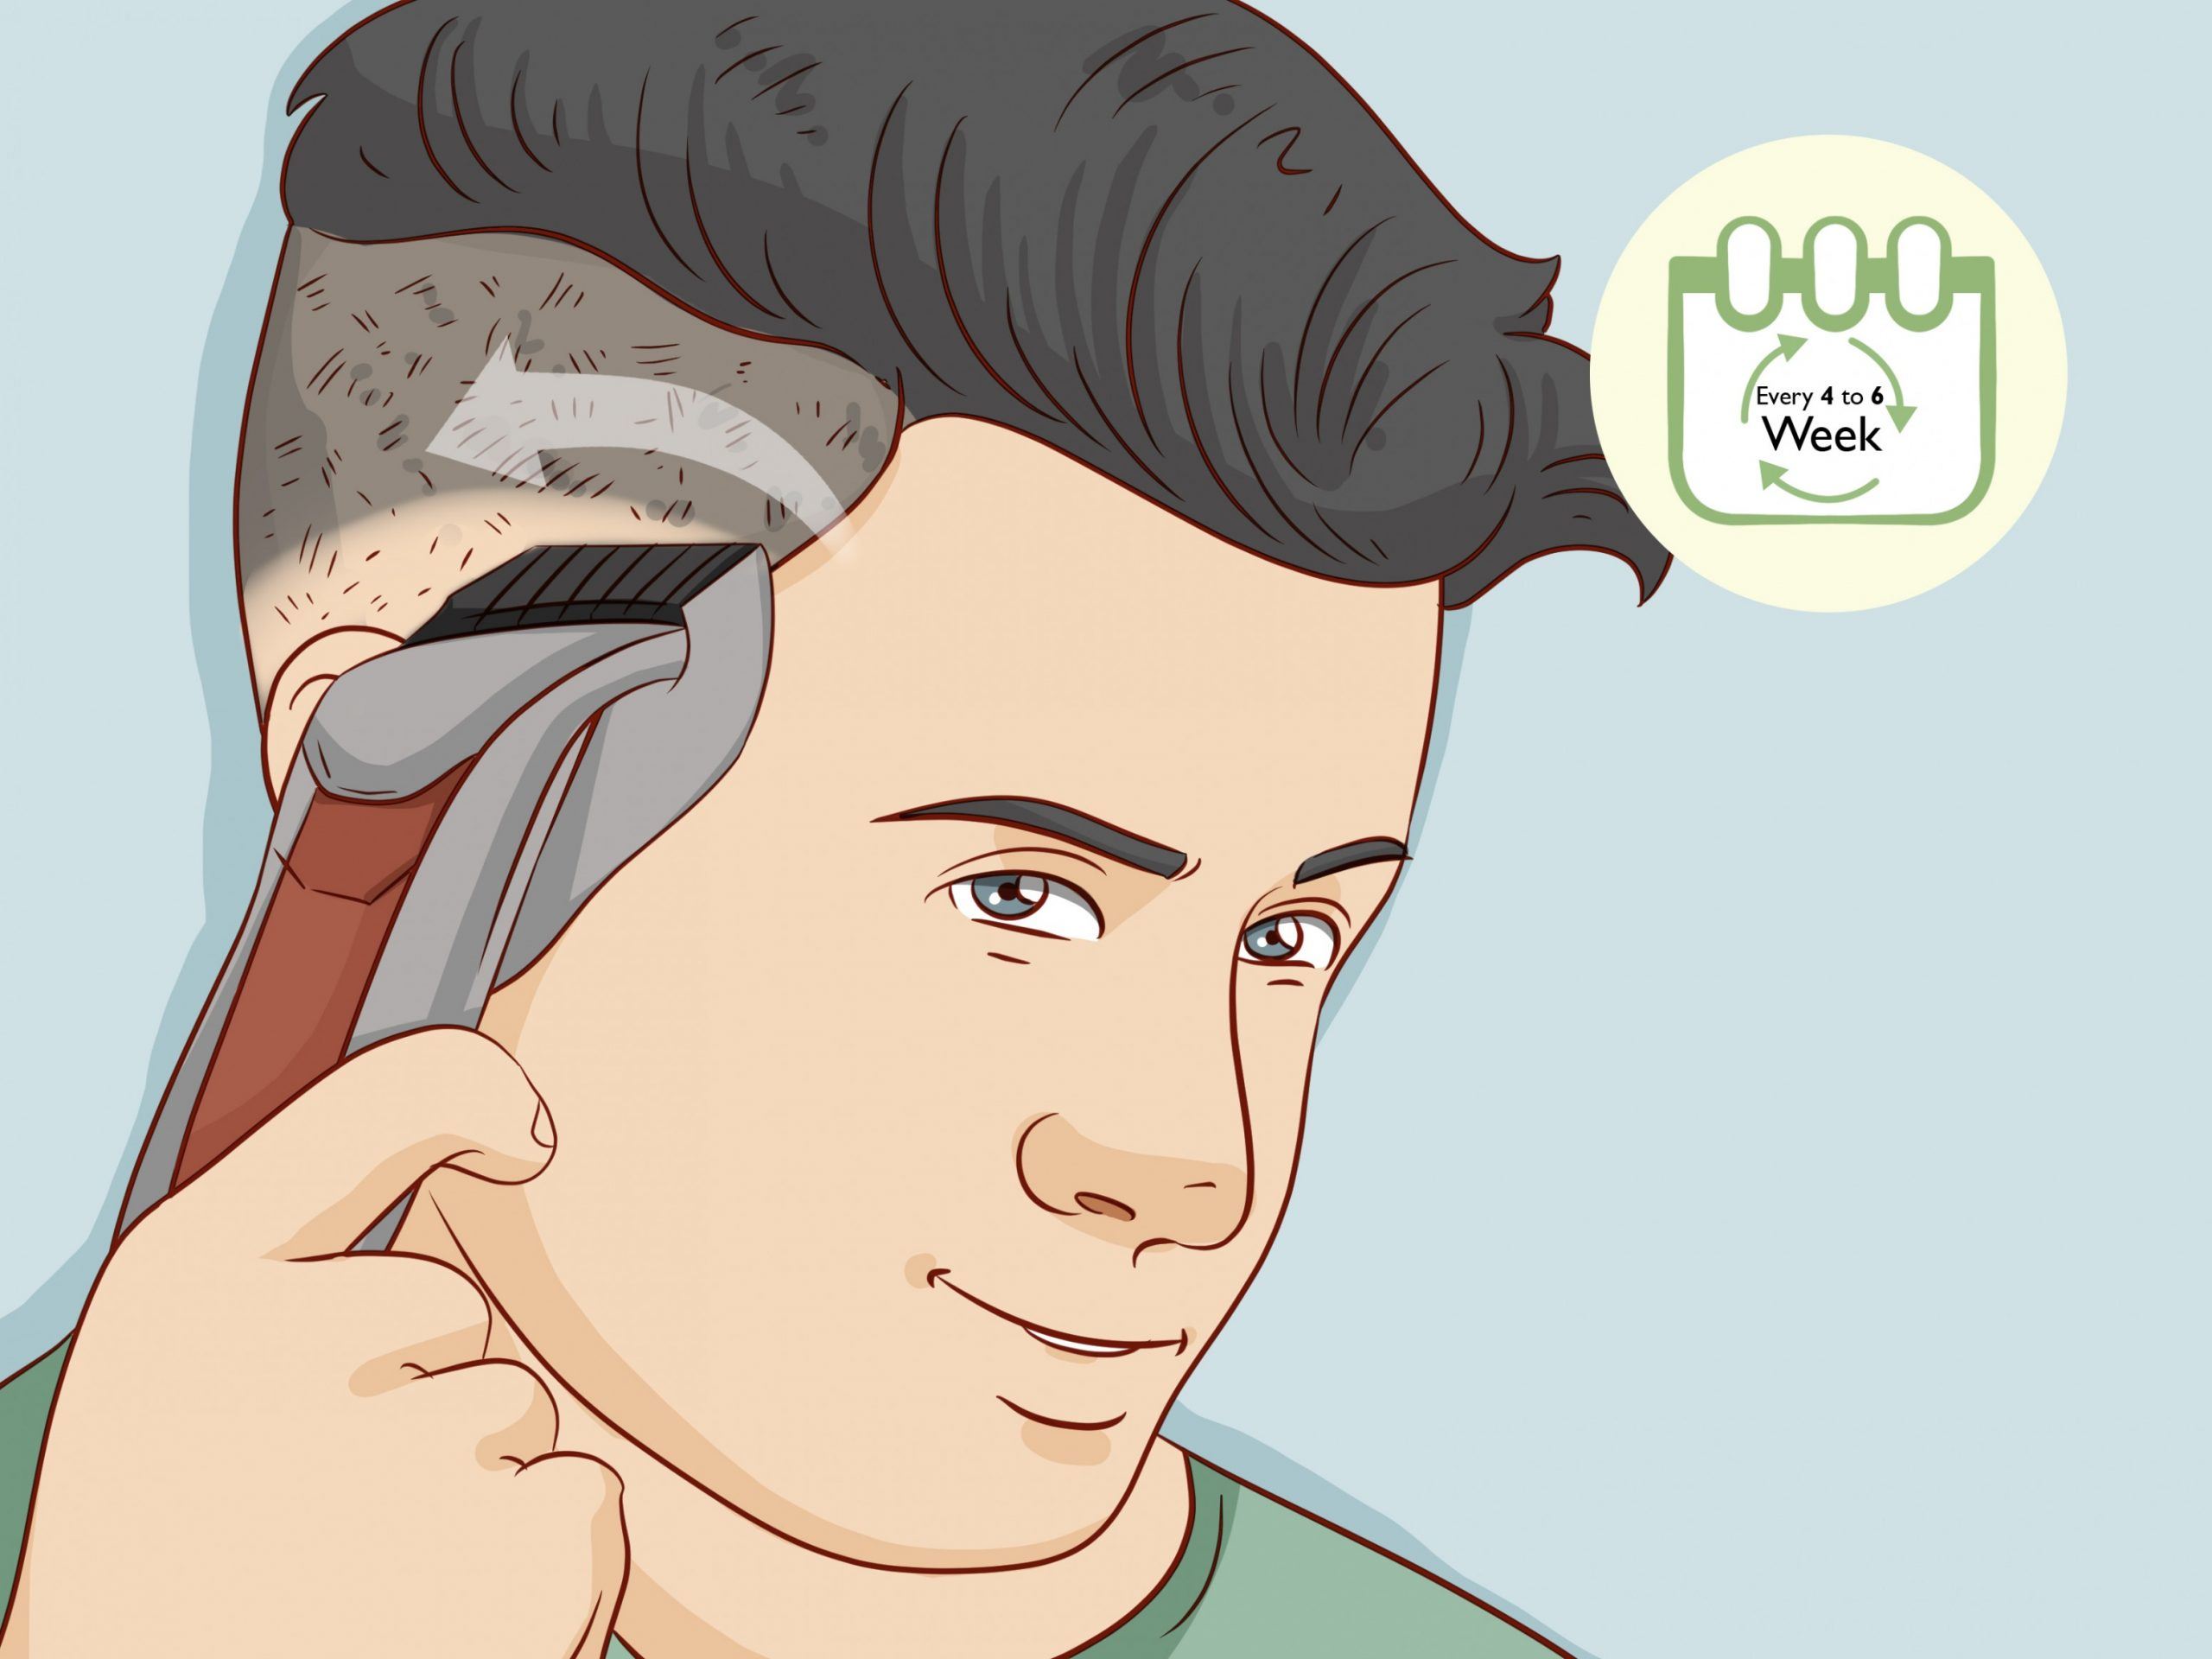 How To Cut A Fade Haircut: 10 Steps (with Pictures) WikiHow Long Fade Haircut